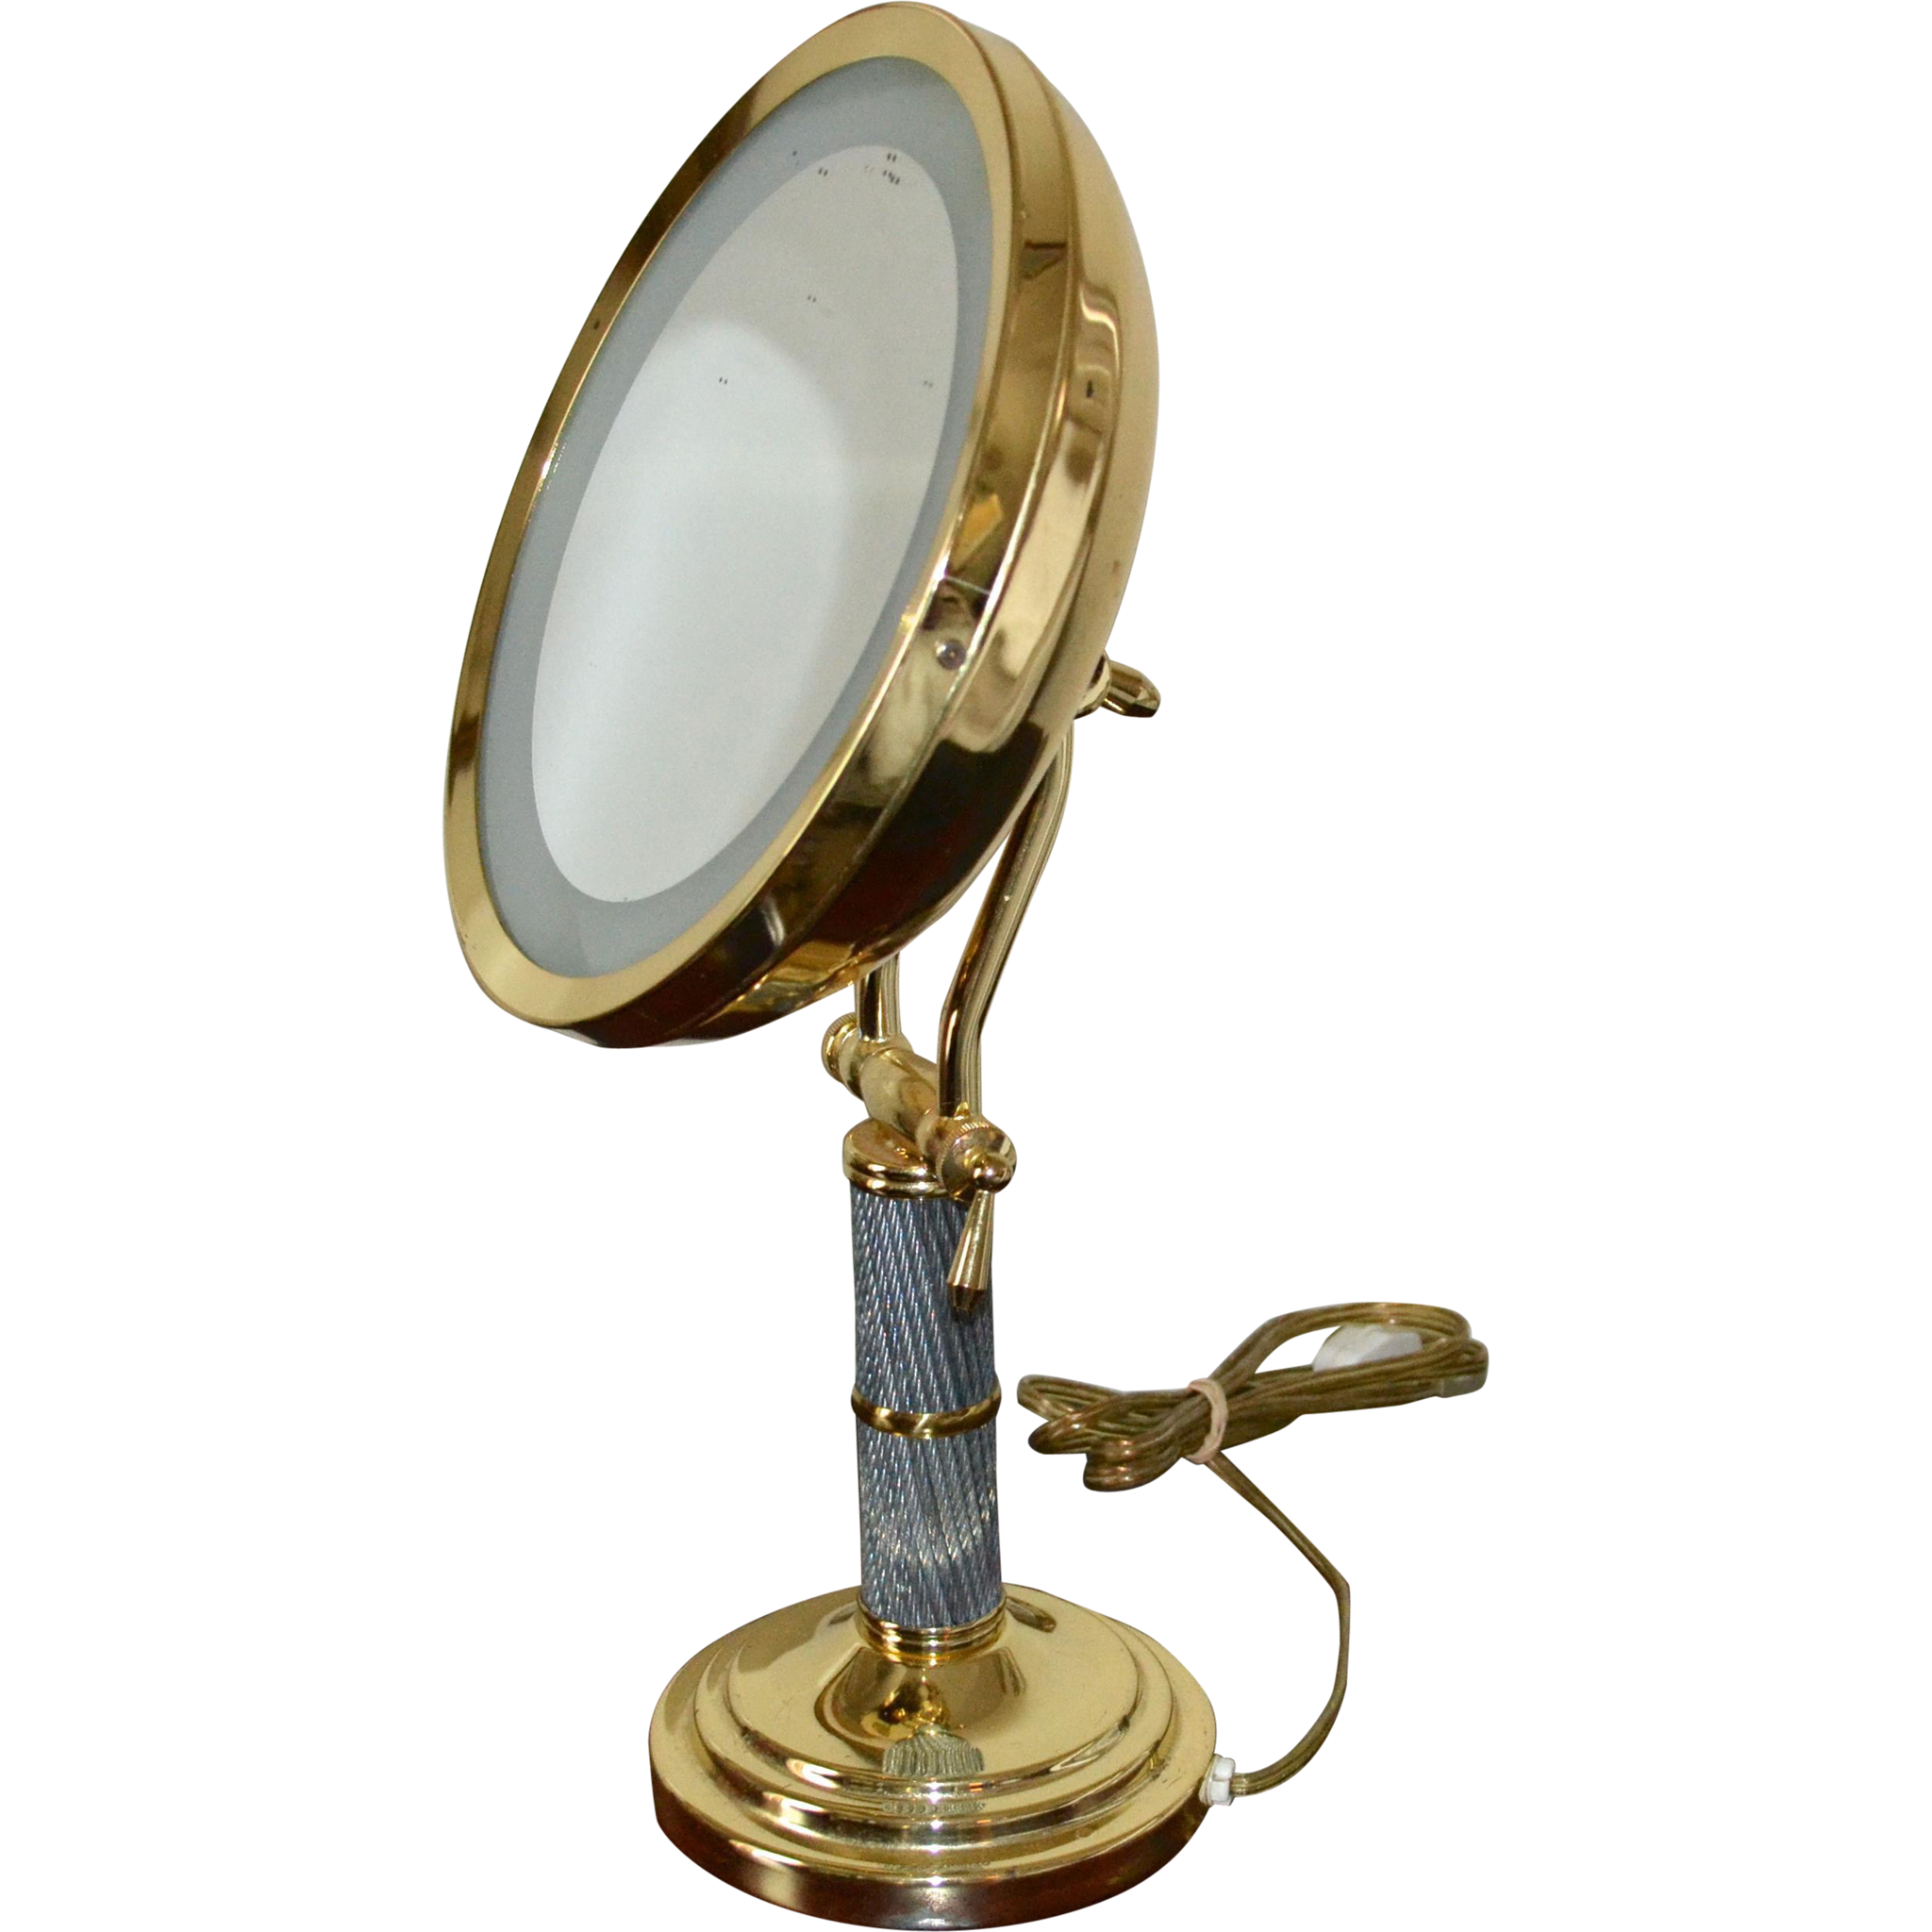 Lighted Vanity Mirror Large : Fancy Deco Inspired Large Swivel Lighted Magnified Vanity Mirror from kitschandcouture on Ruby Lane